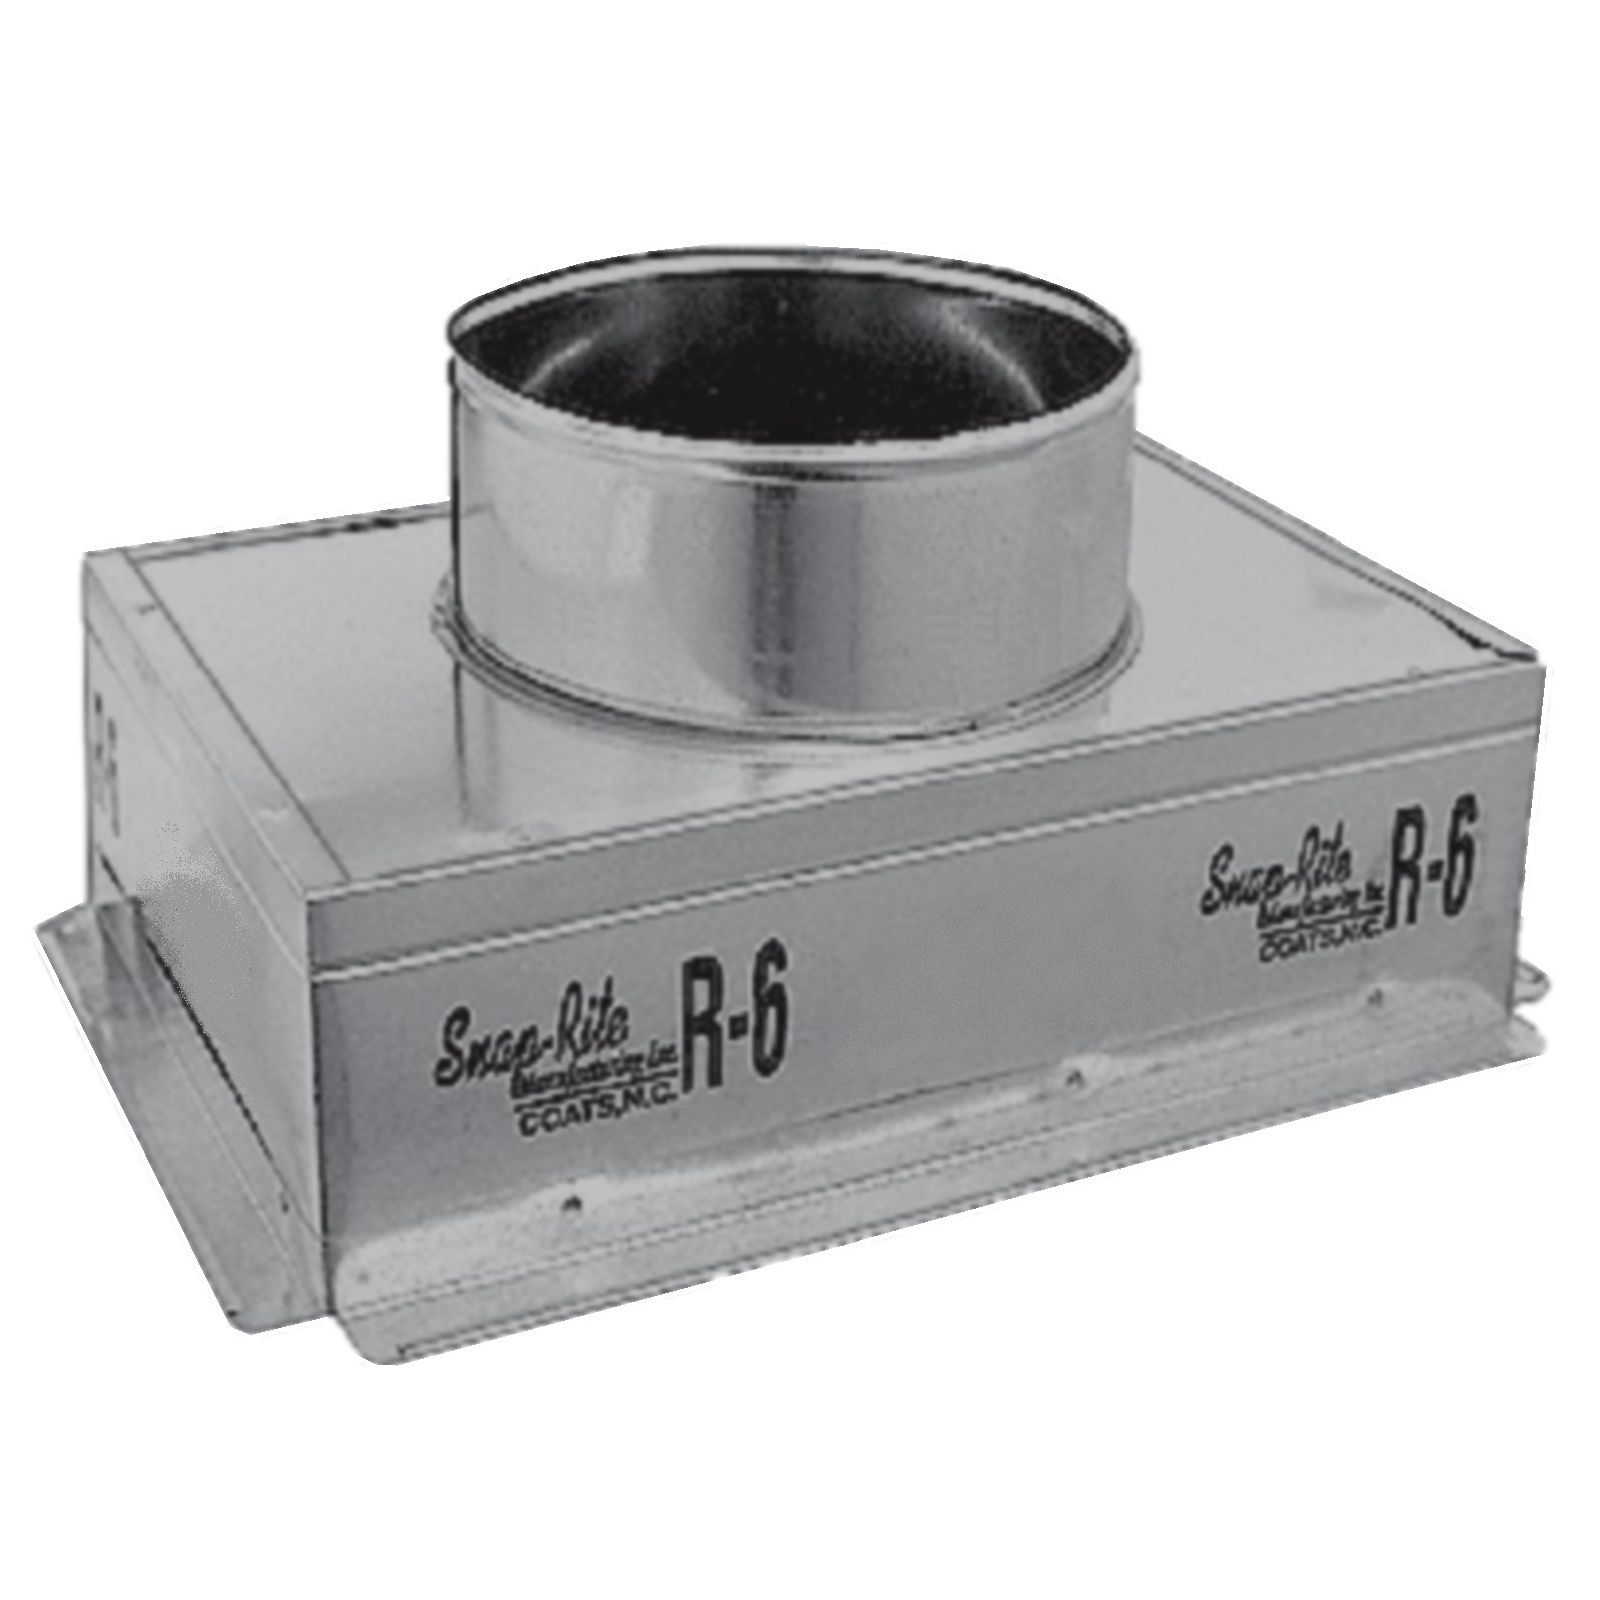 "Snap-Rite 14X08X073600FG - Metal Top Insulated Register Box With Flange & Gasket, 14"" x 08"" x 07"" - R6"